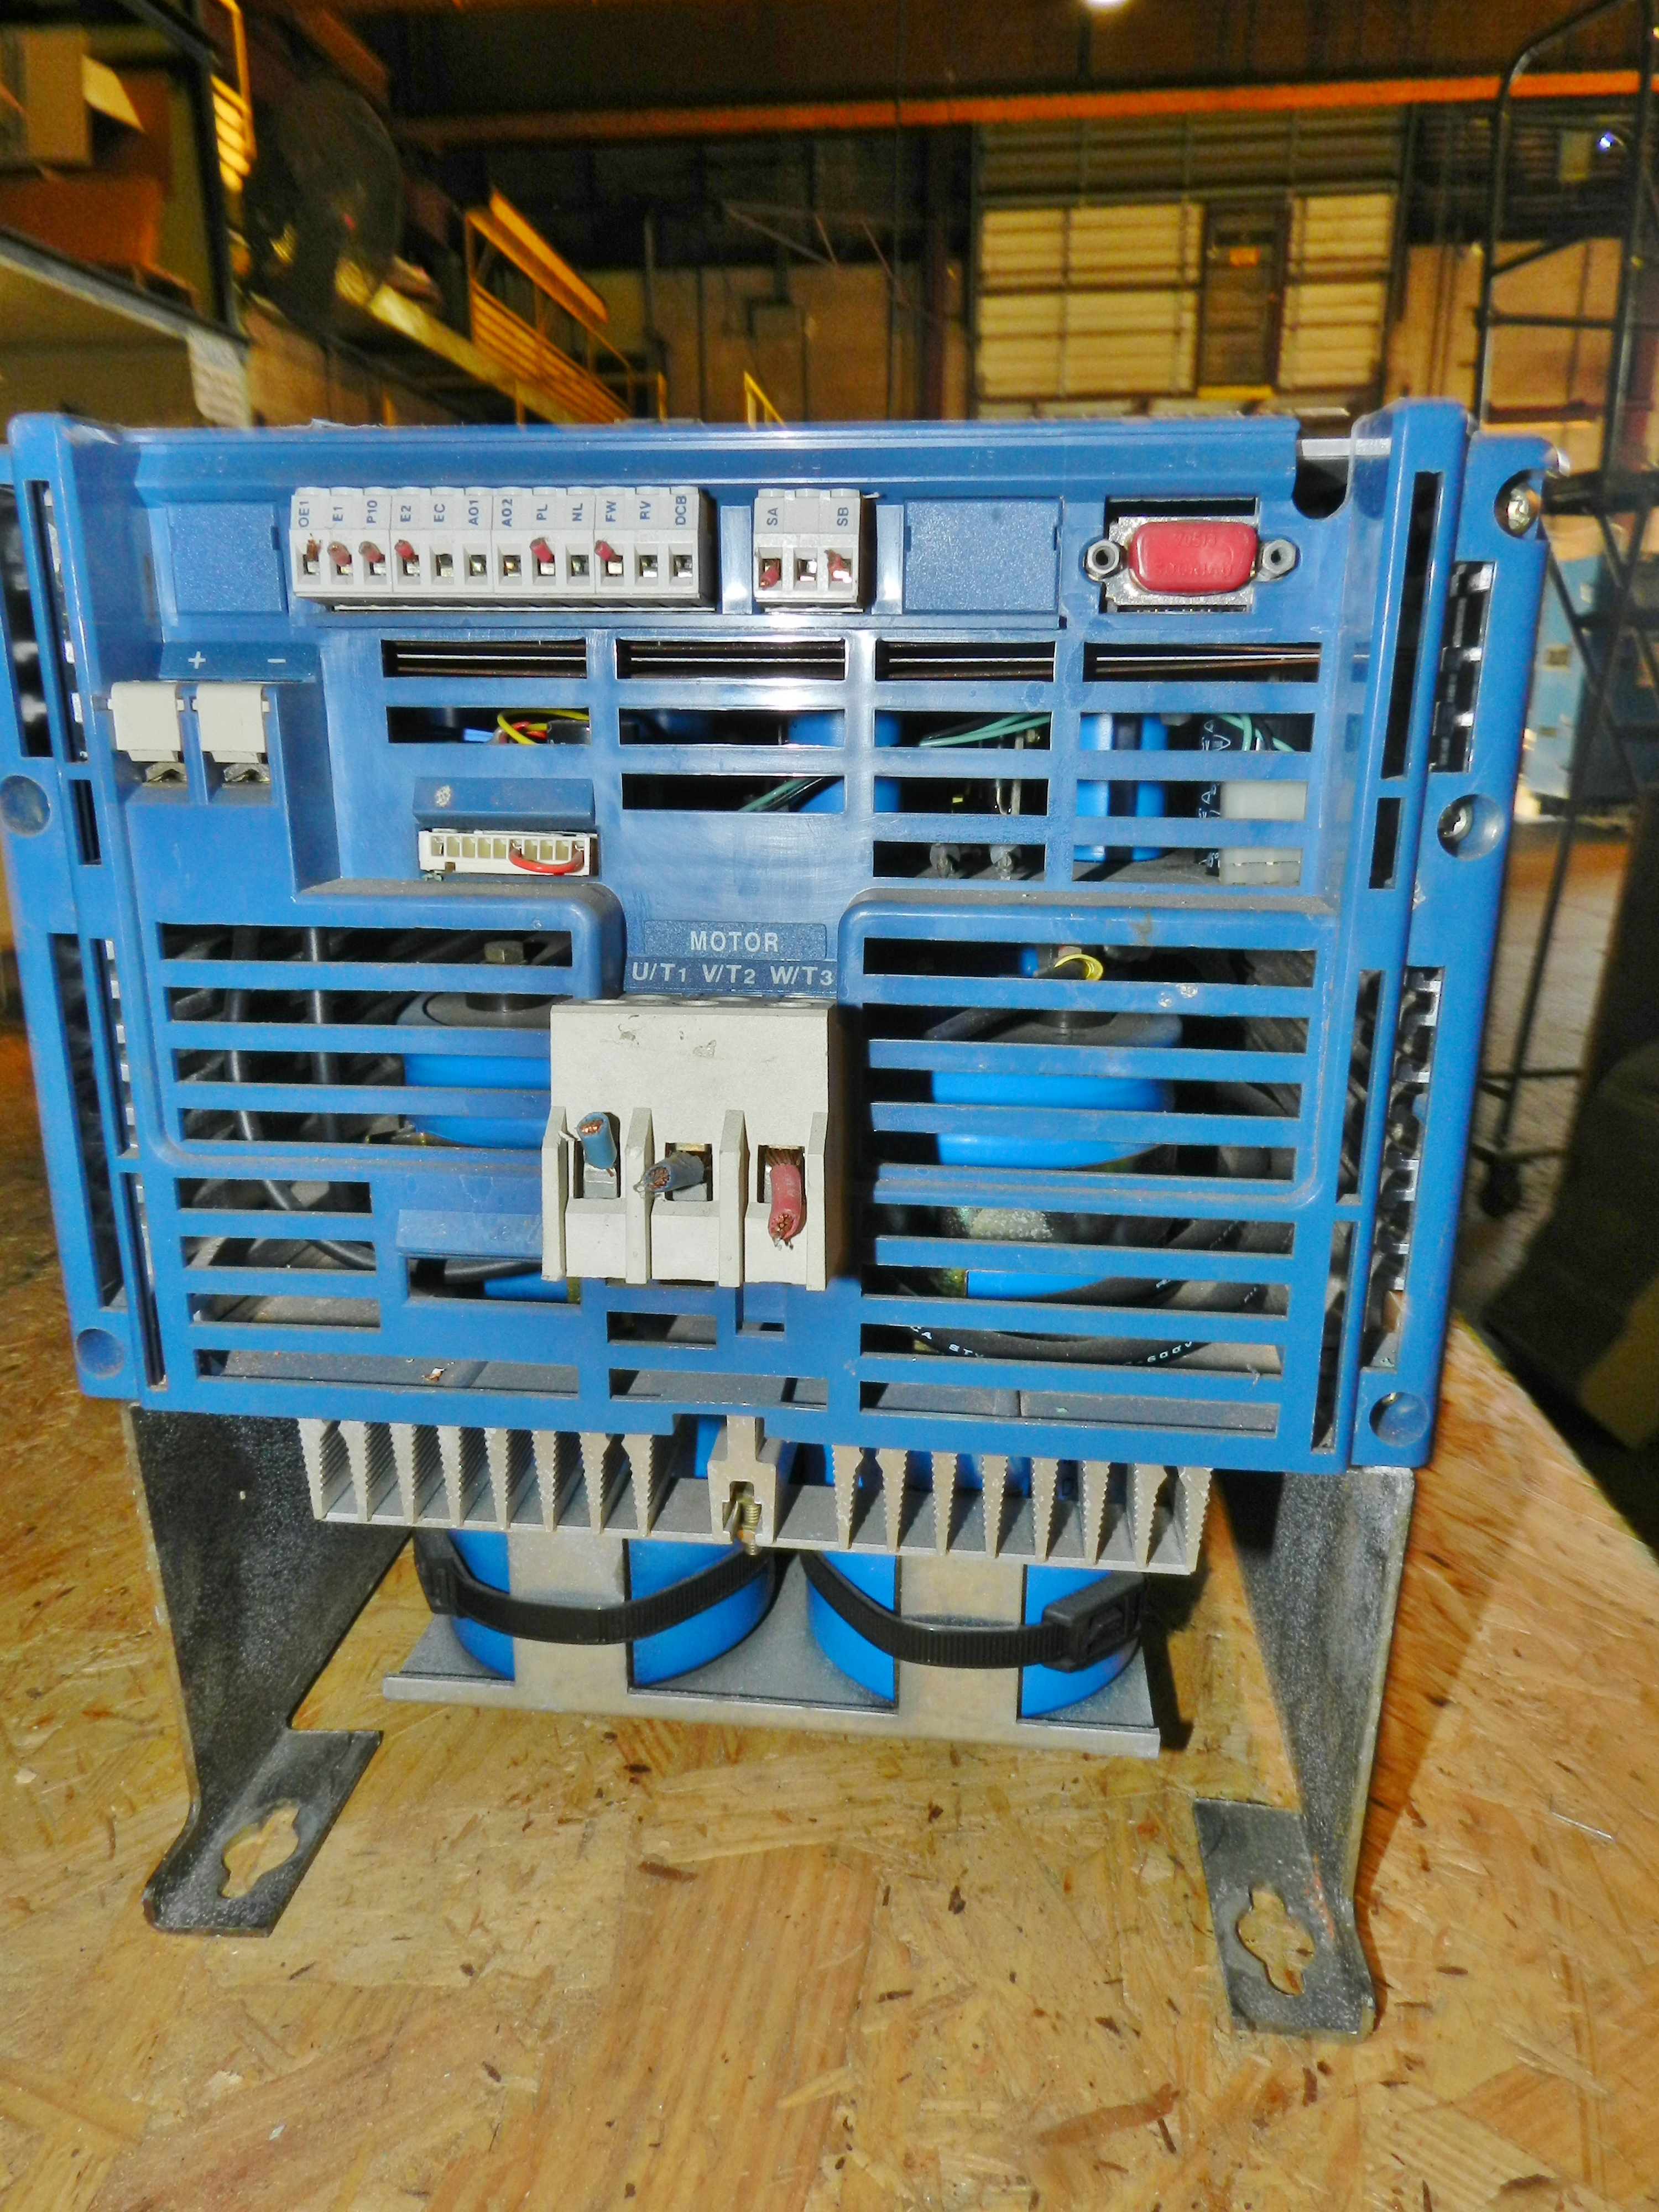 Lot 57 - Square D 25 HP AC Drive